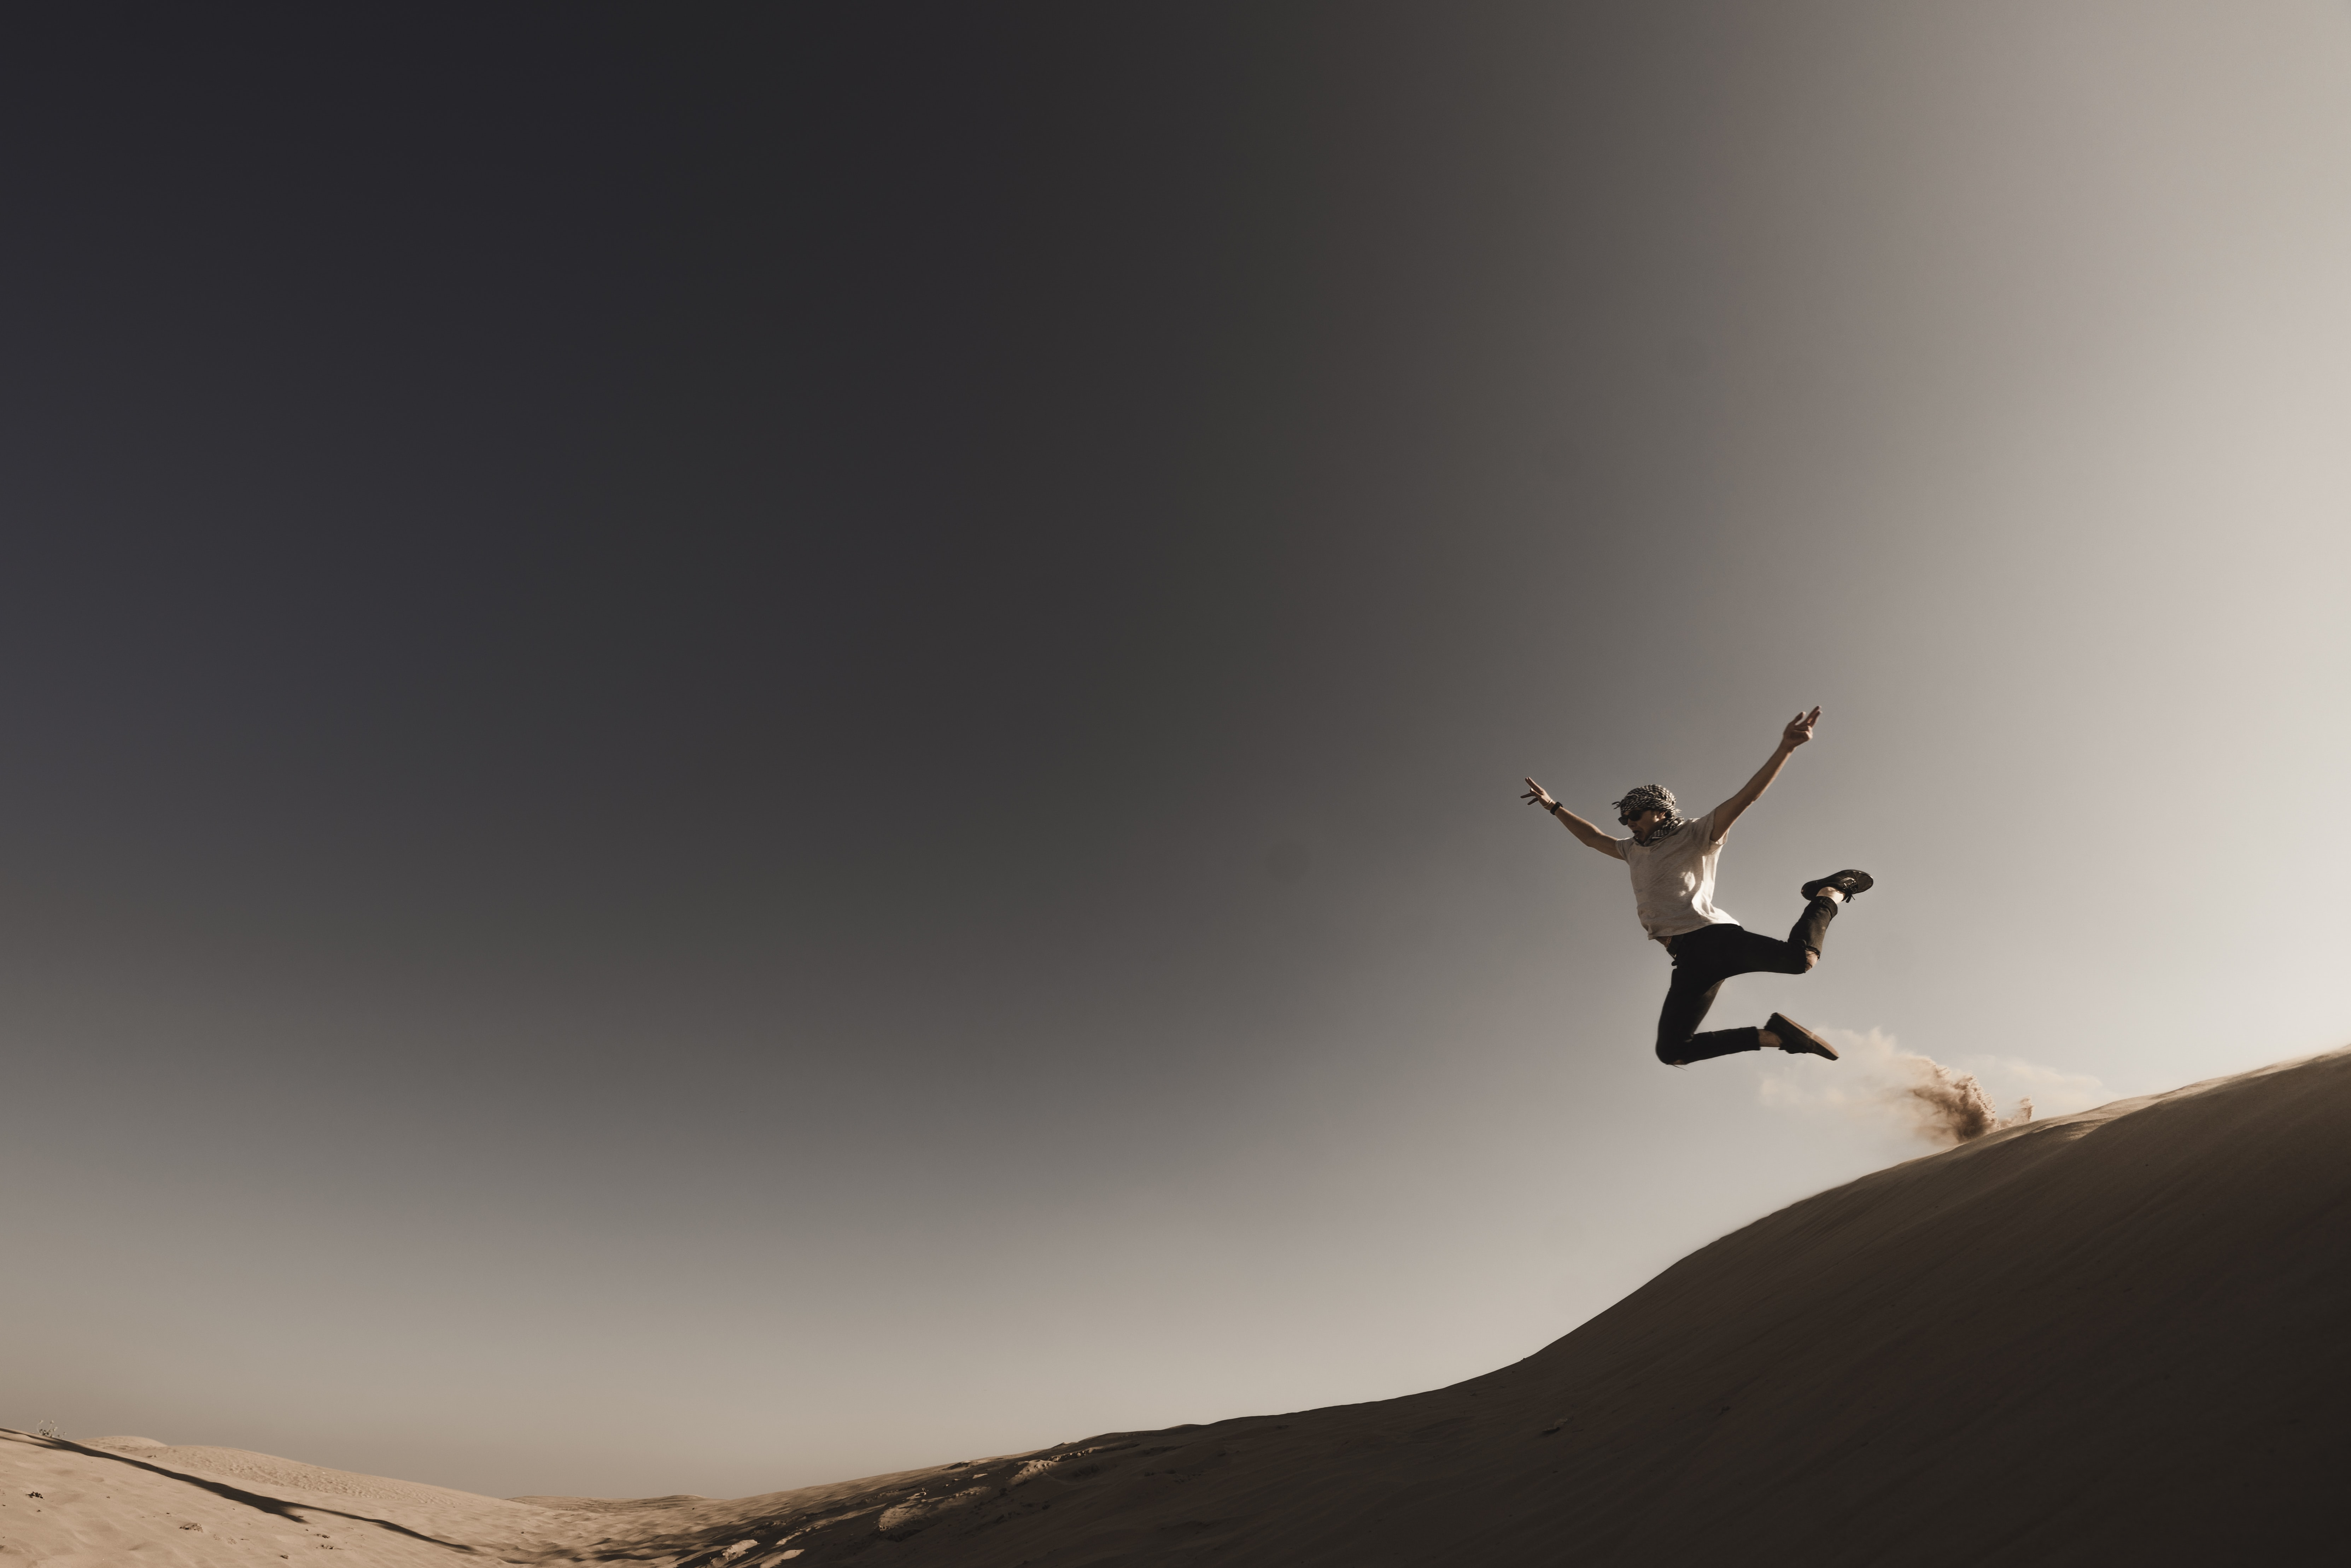 person jumping from sand dune during daytime